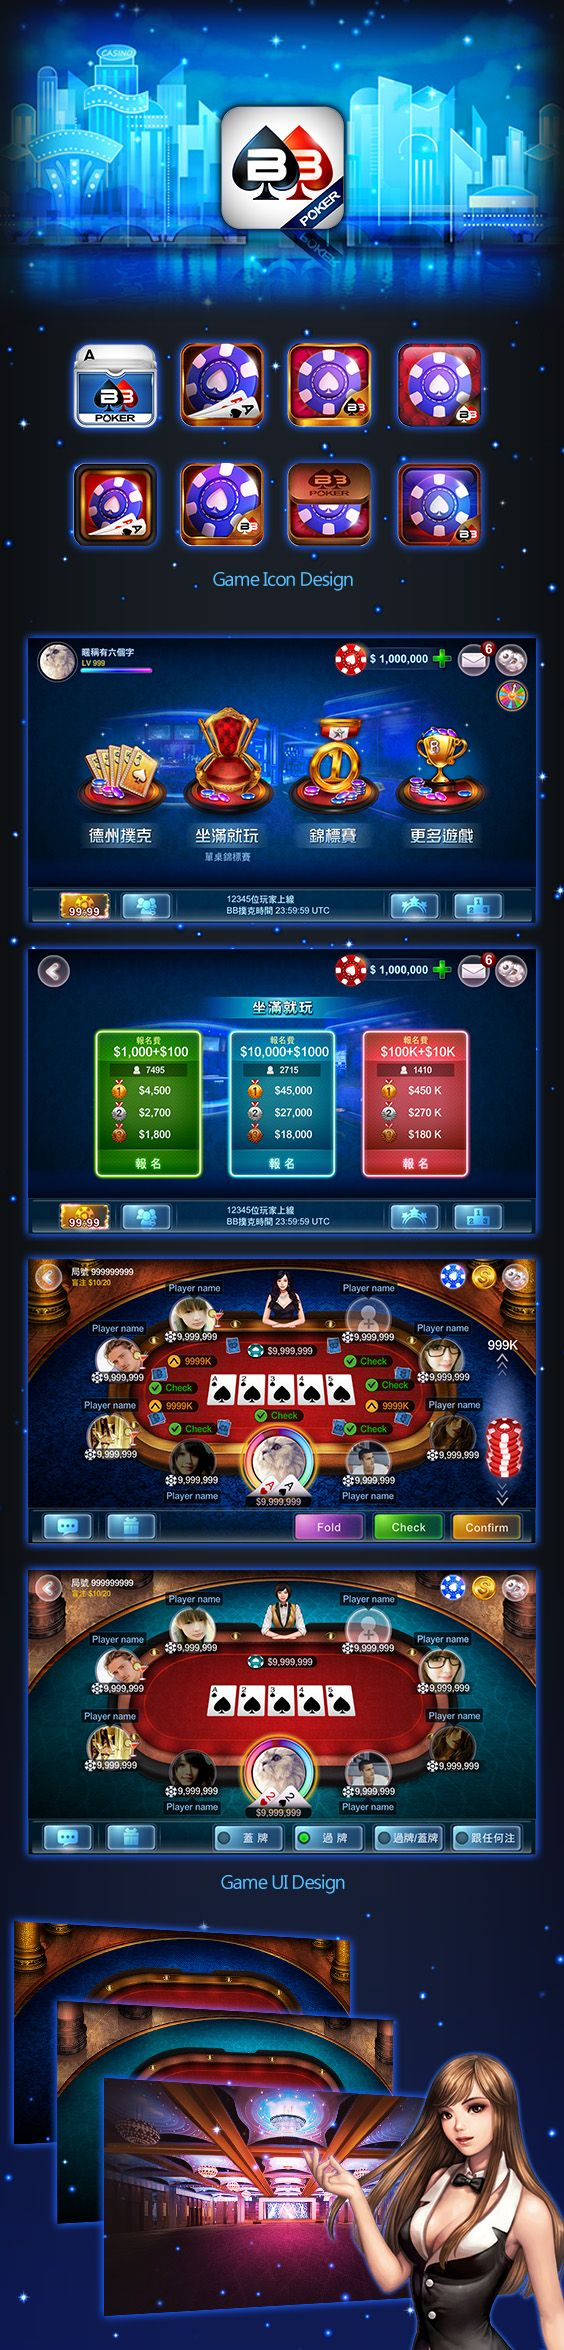 Game ui / Texas Holdem Poker Design #App by Grace Lin